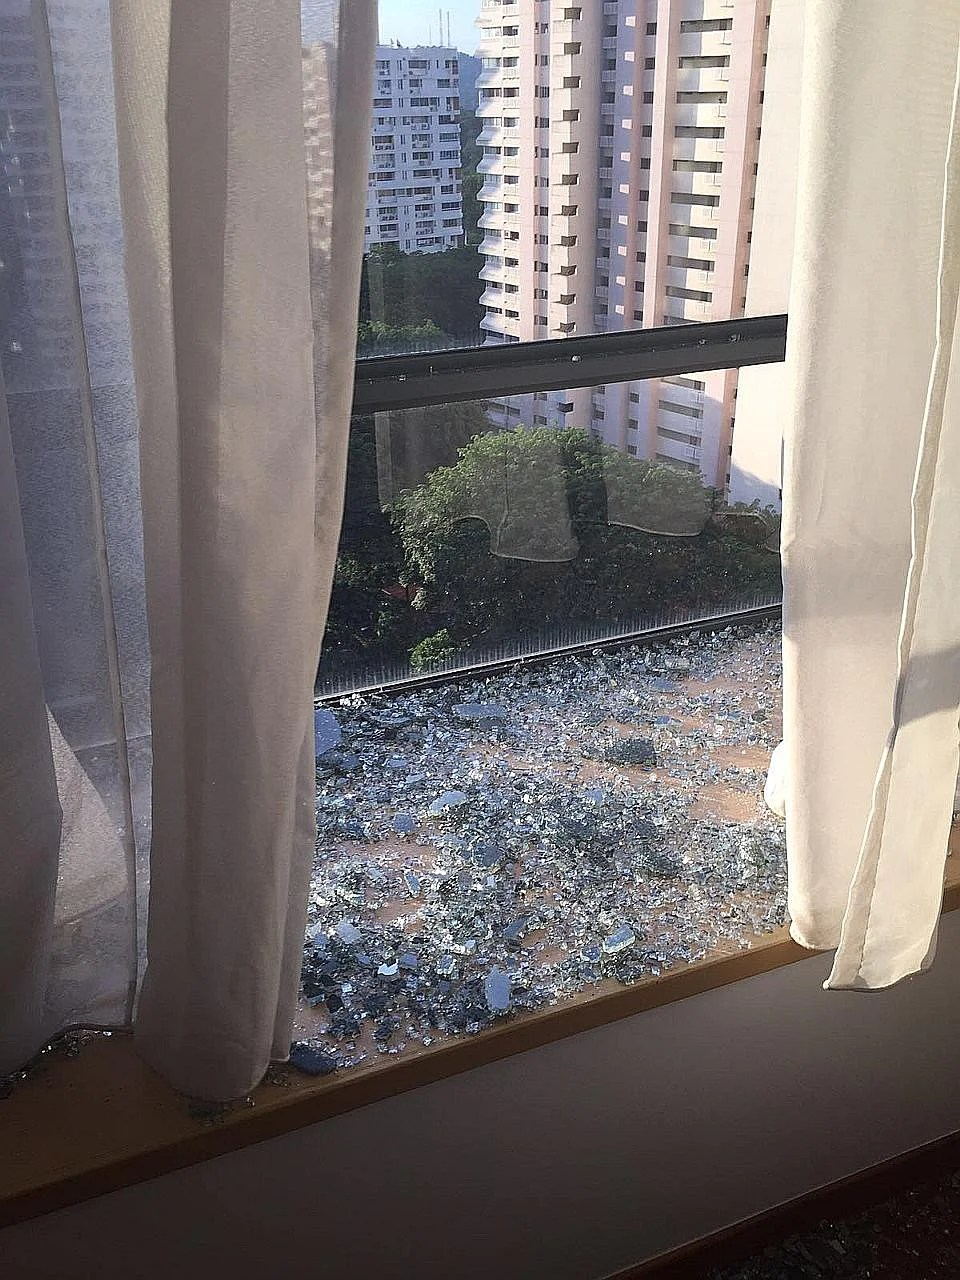 Find out why a window at this condo spontaneously shattered  Home  Decor Singapore